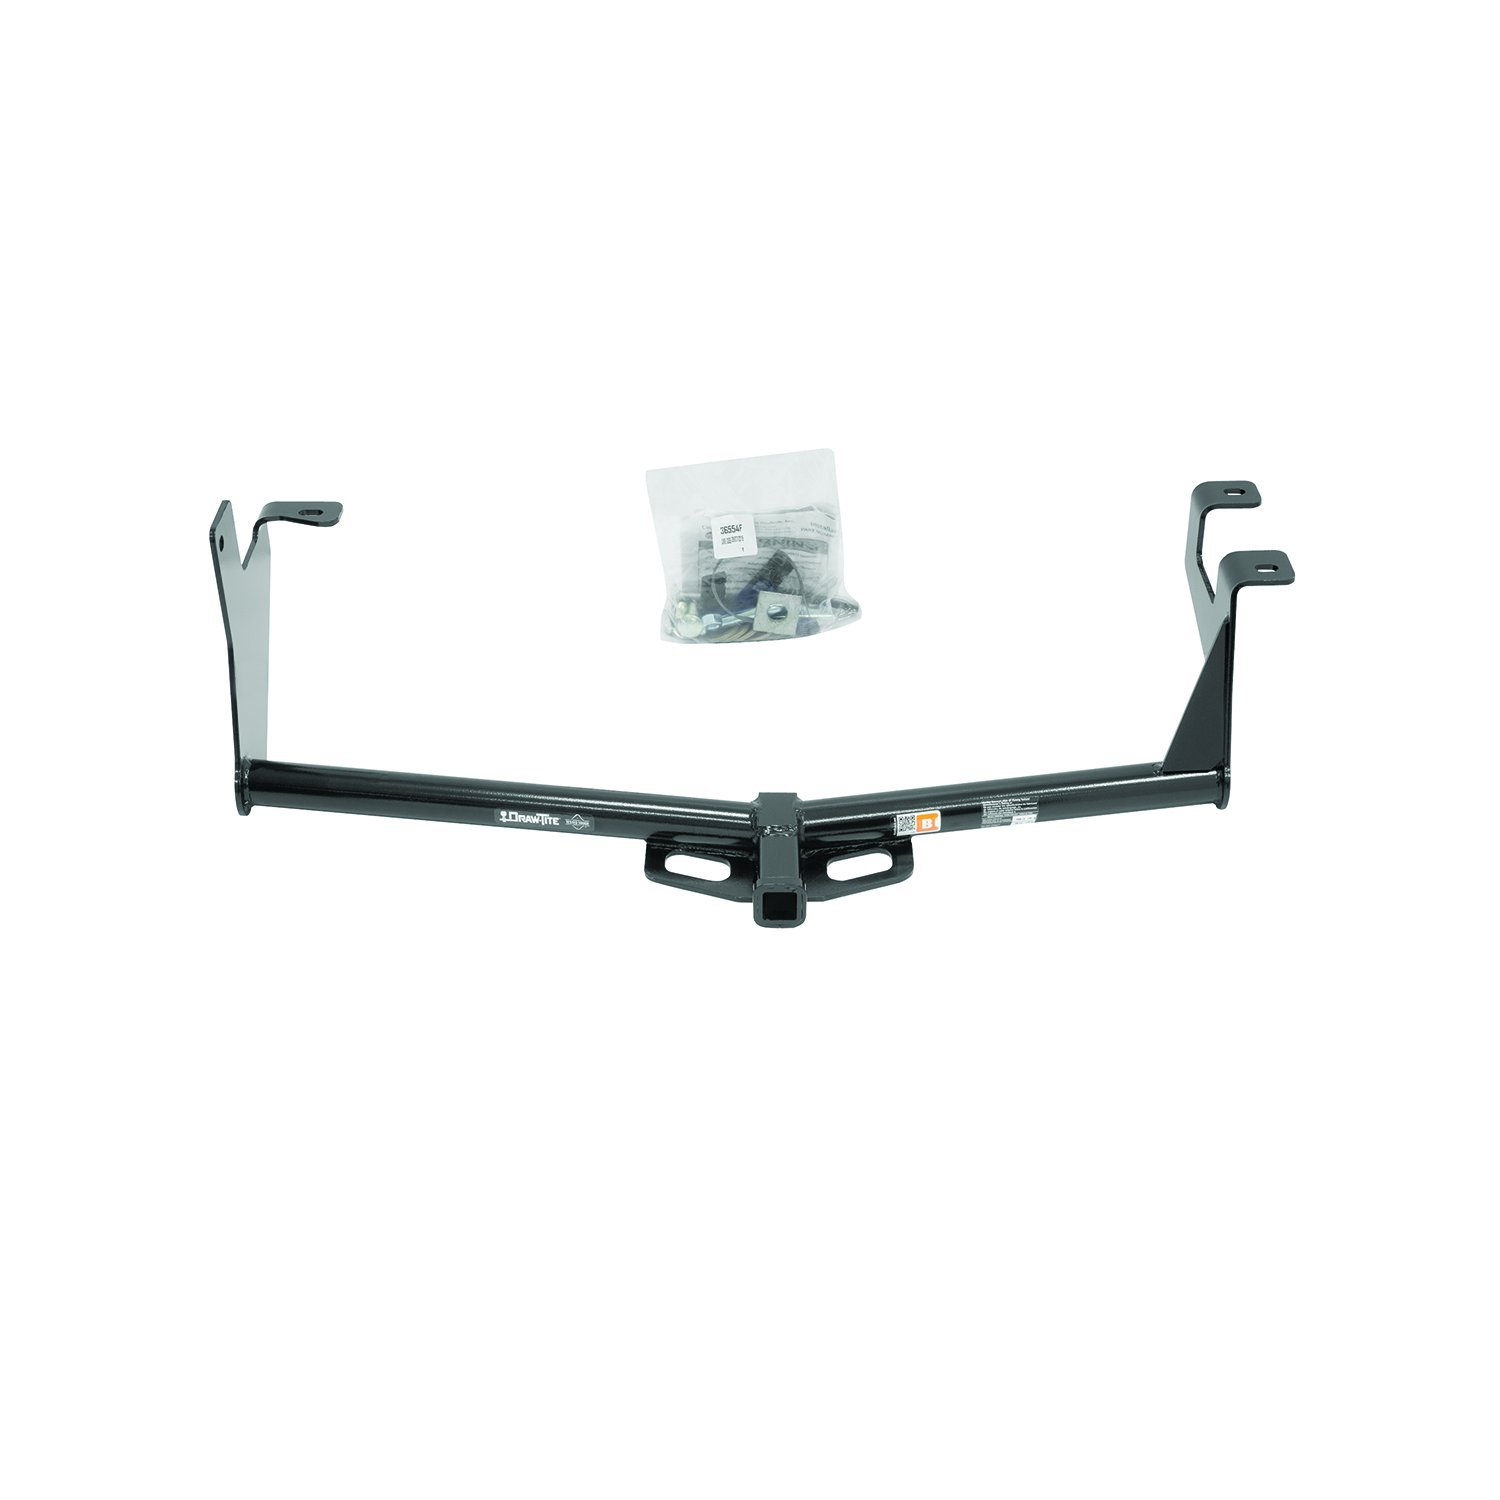 Husky Towing Products 32464 800-1400Lb Wdh Round Bar